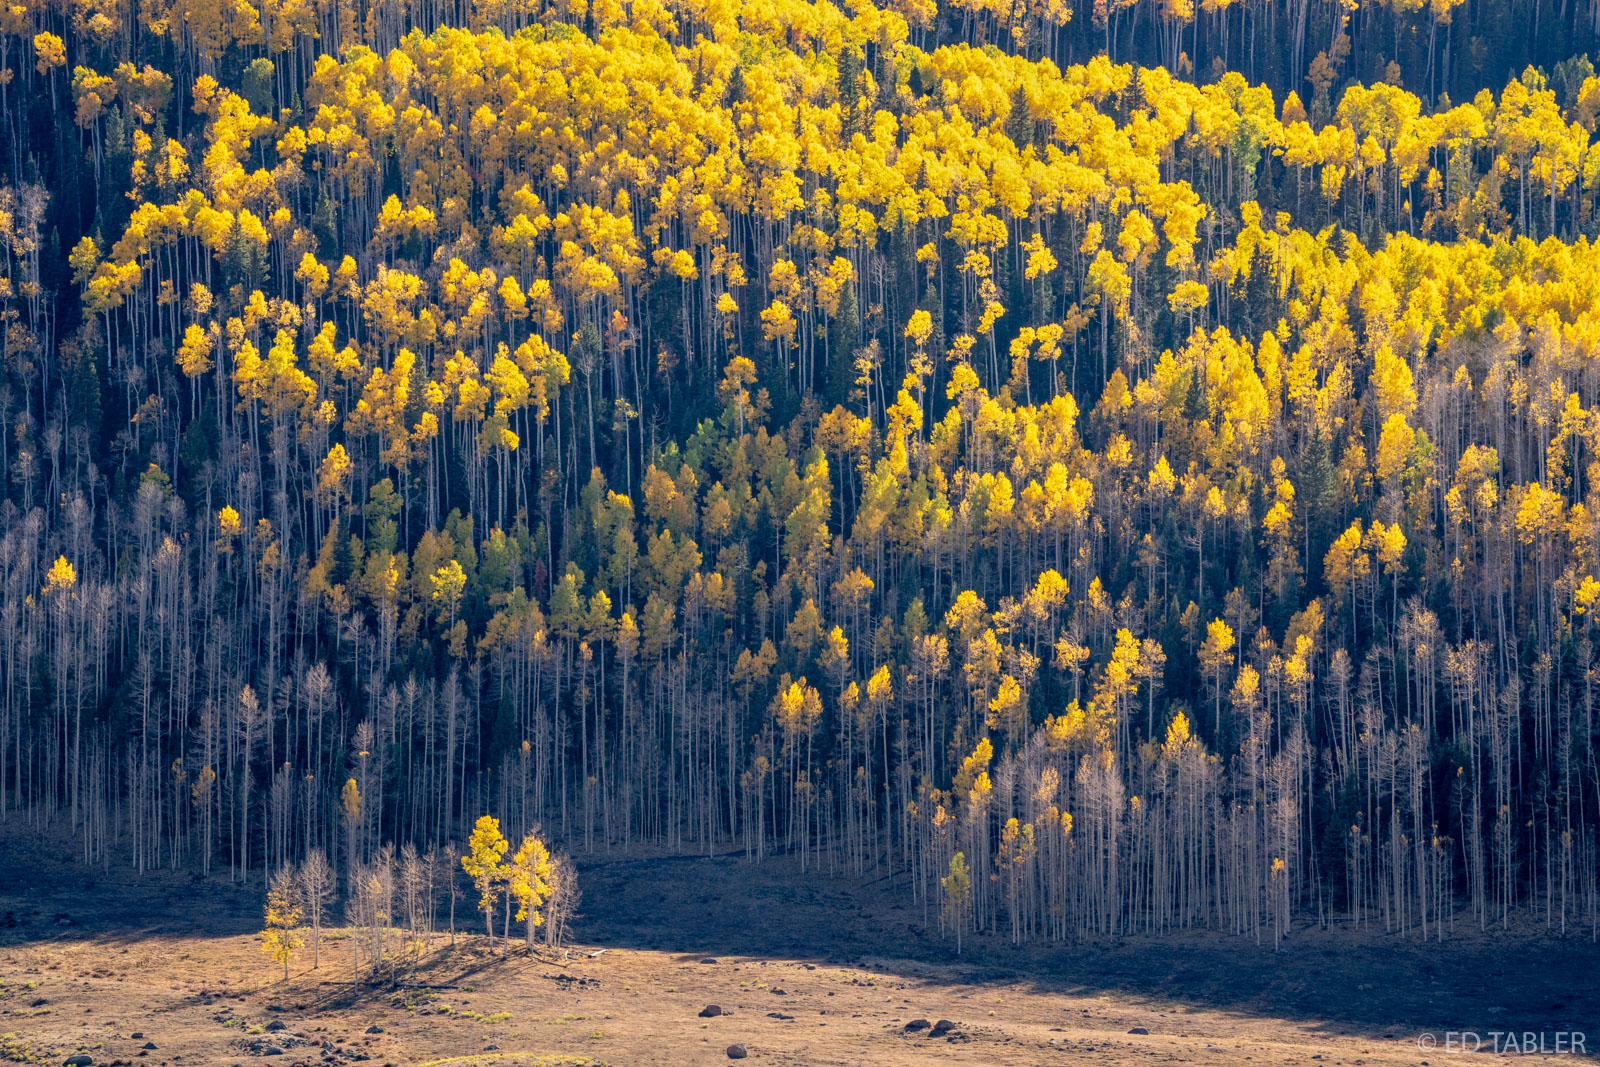 autumn, uncompahgre, national forest, colorado, rays, afternoon sun, golden, aspen, solitary, strand, valley, photo